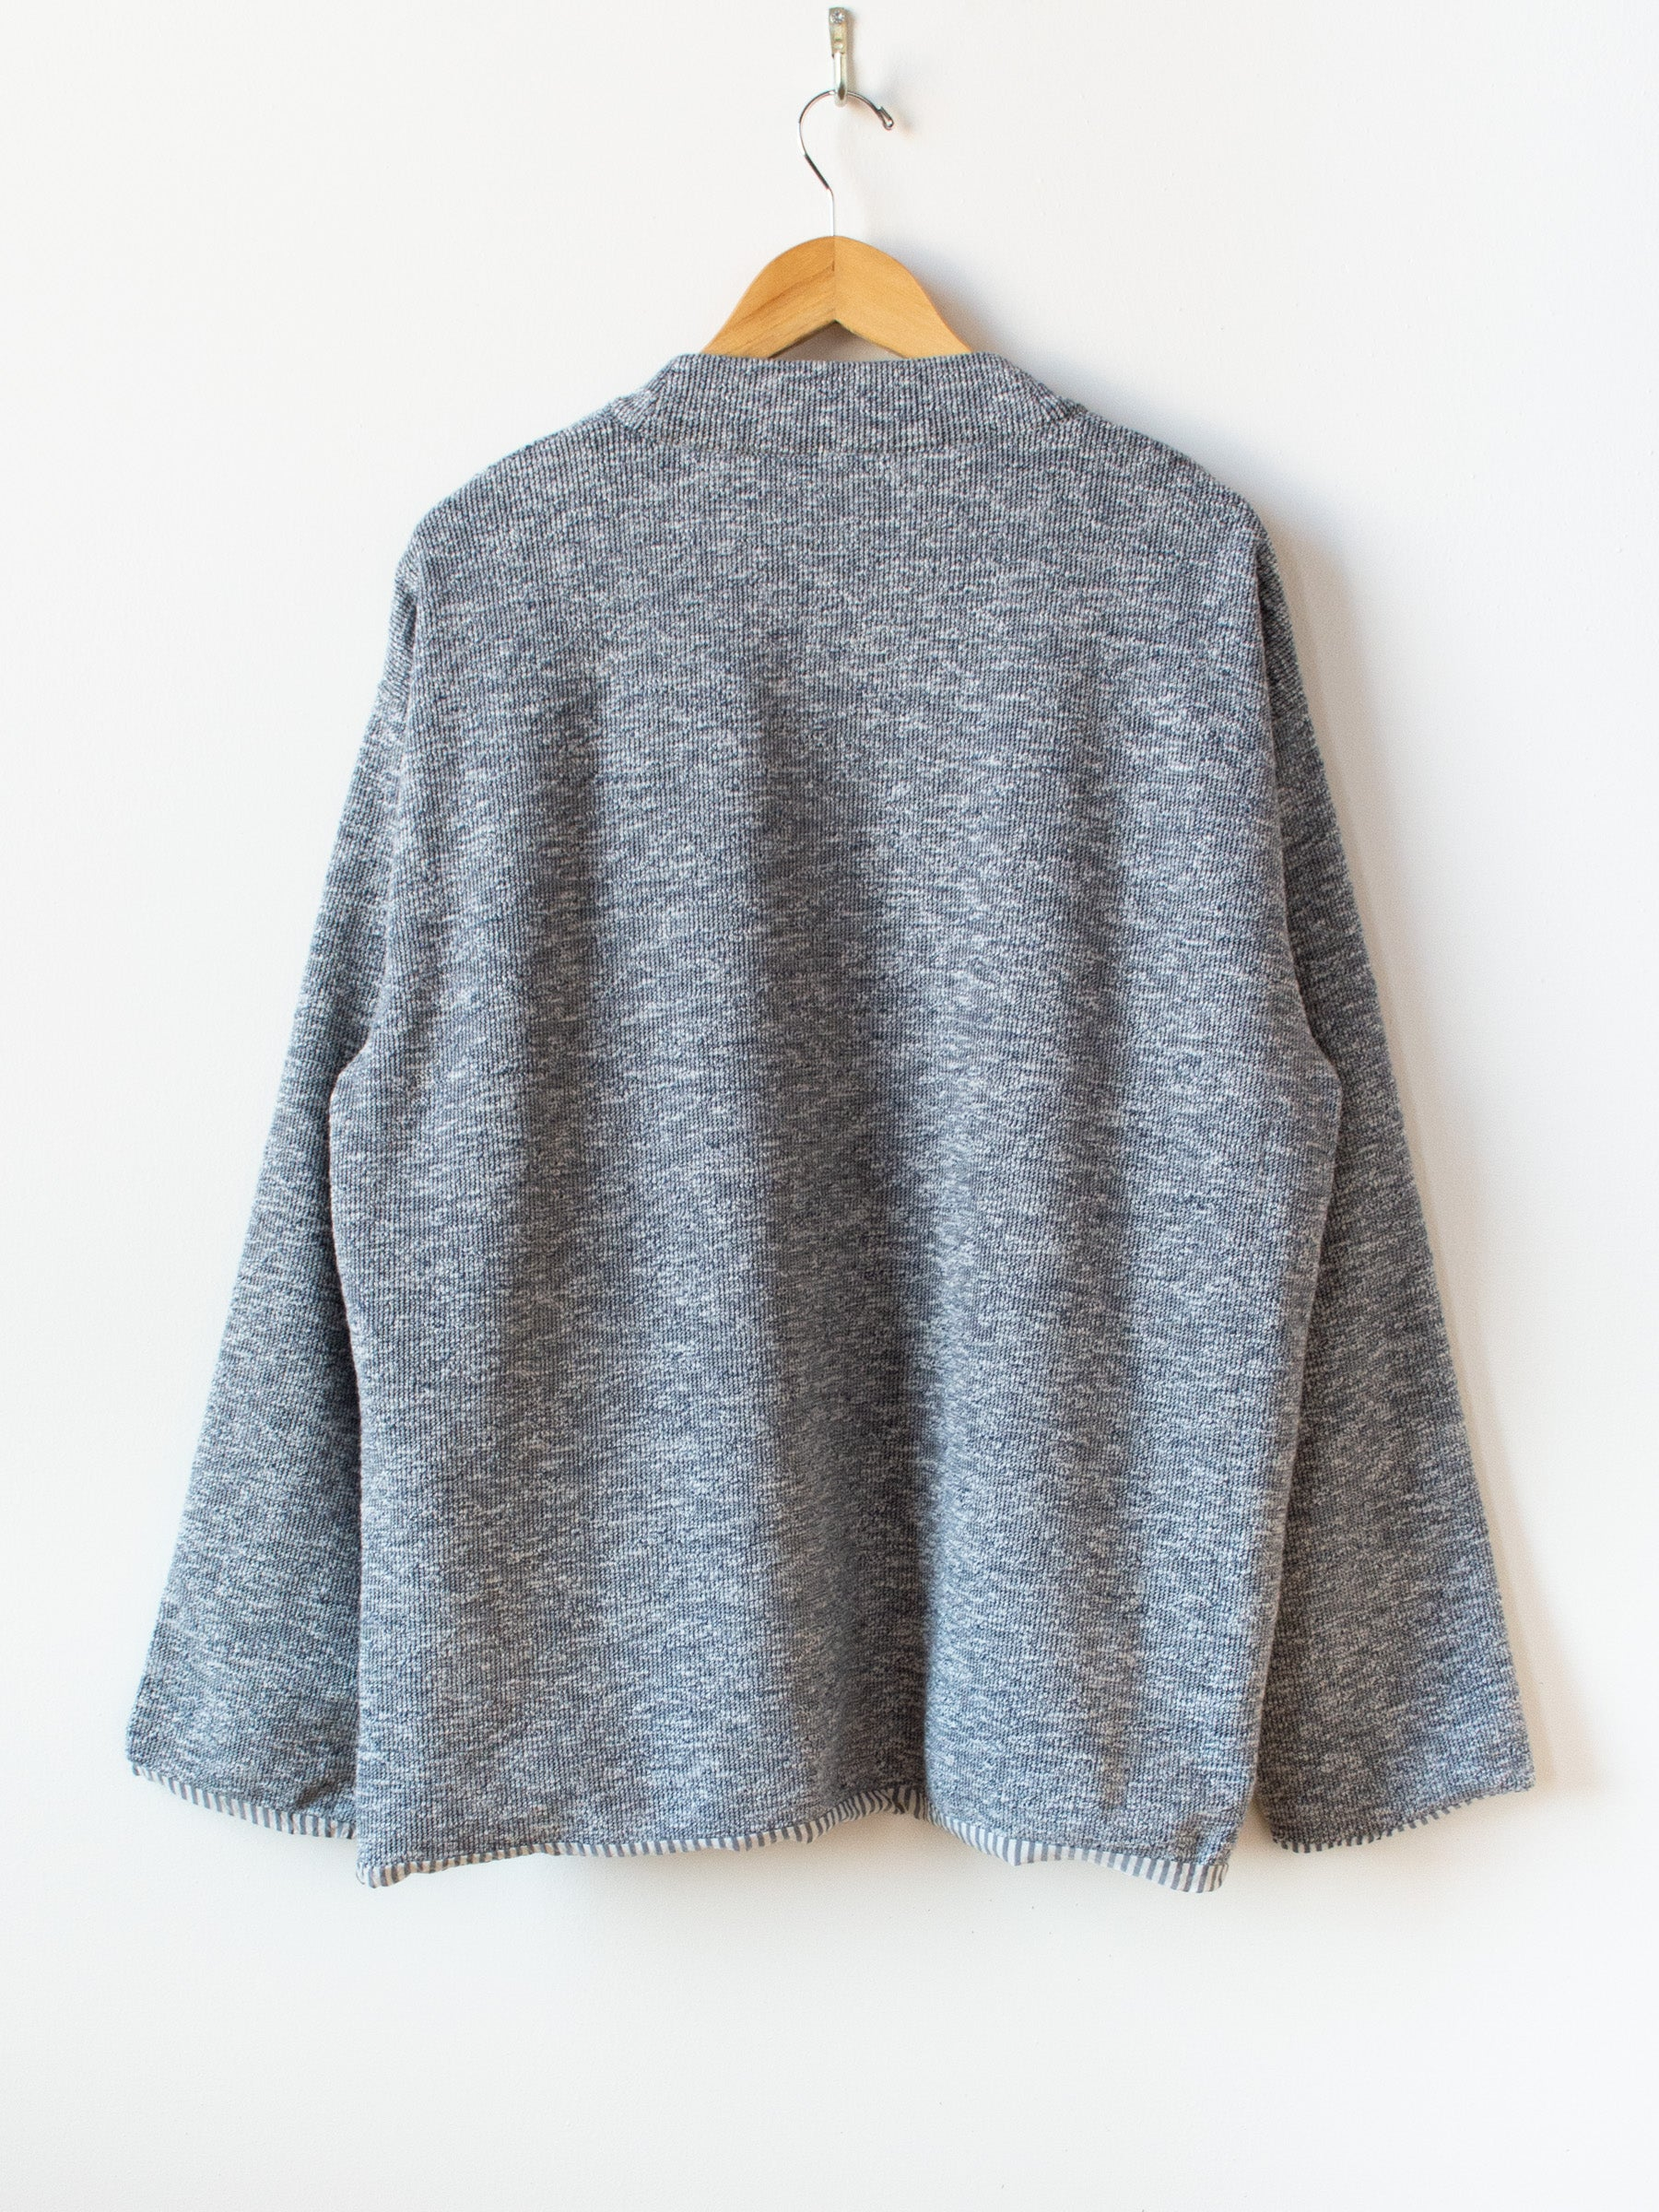 Lined Easy Cardigan - Marled Navy